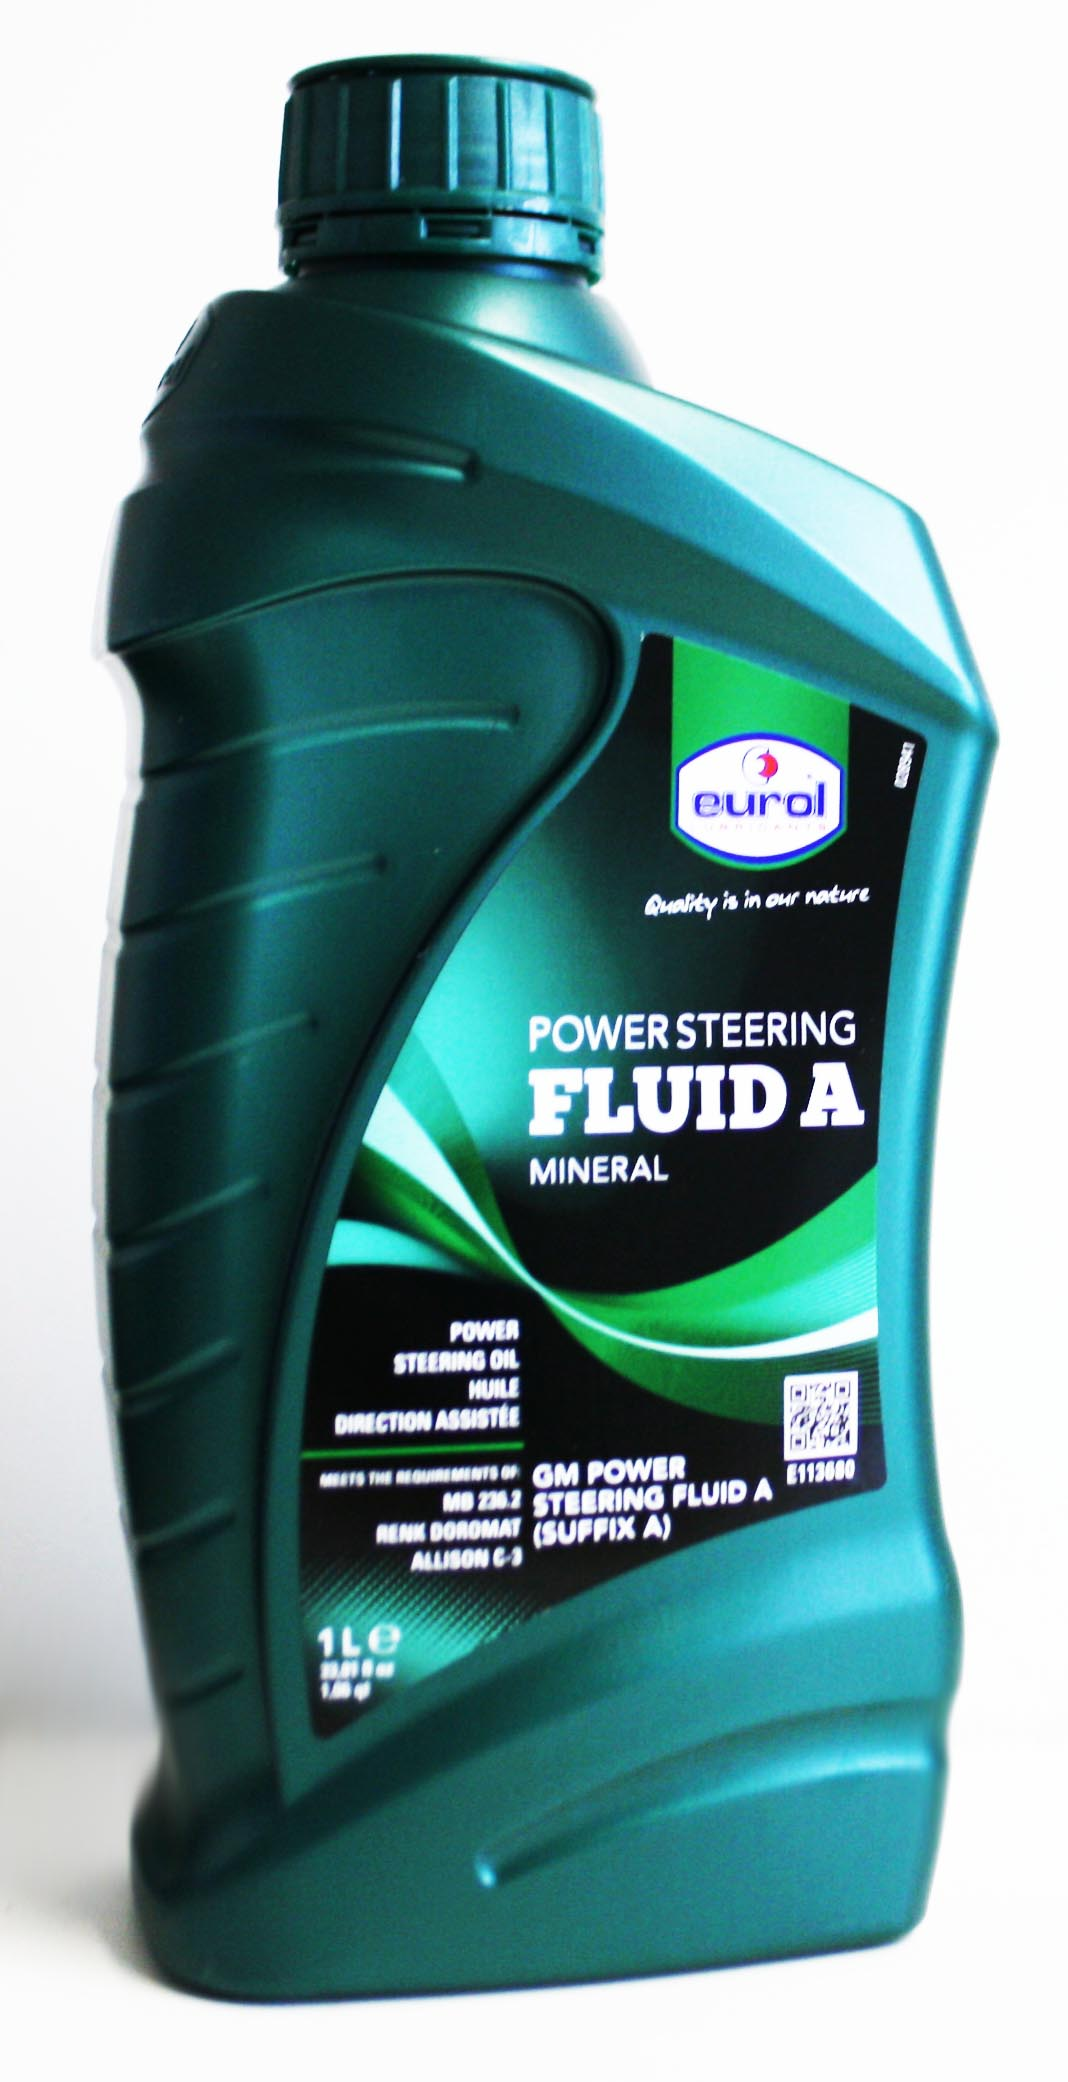 EUROL POWER STEERING FLUID A